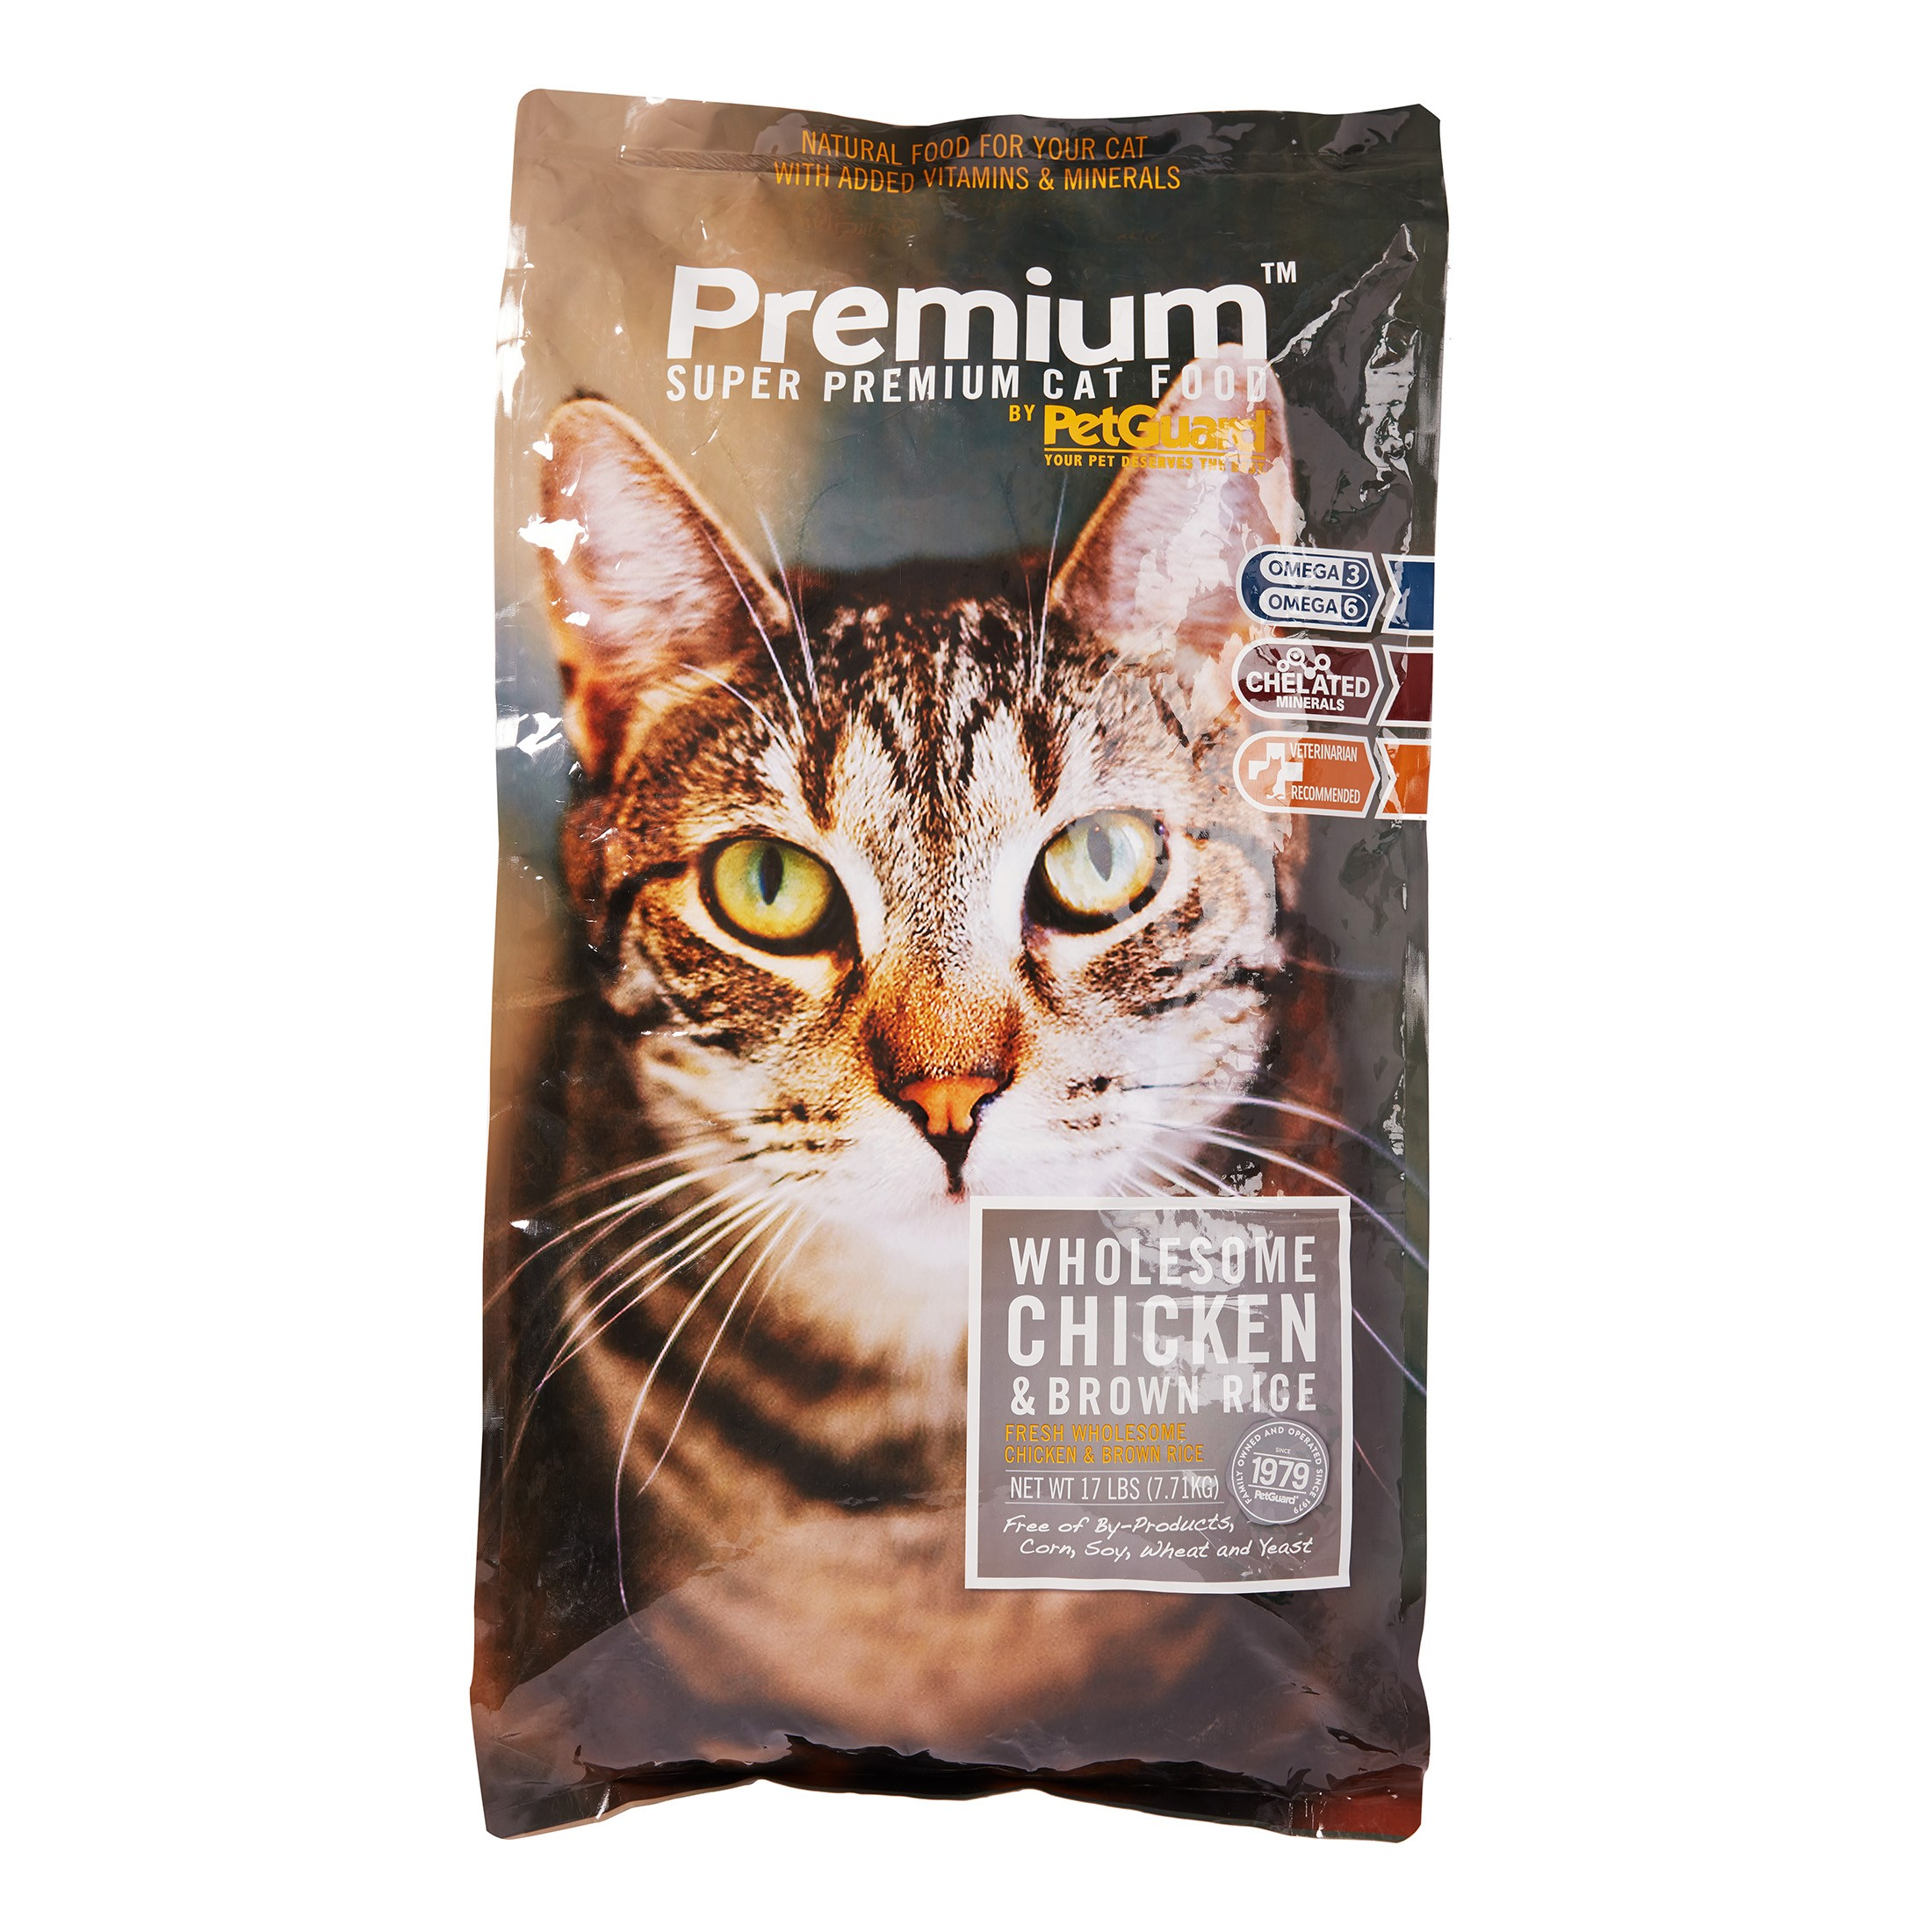 PetGuard Premium Wholesome Chicken & Brown Rice Dry Cat Food, 17 lb